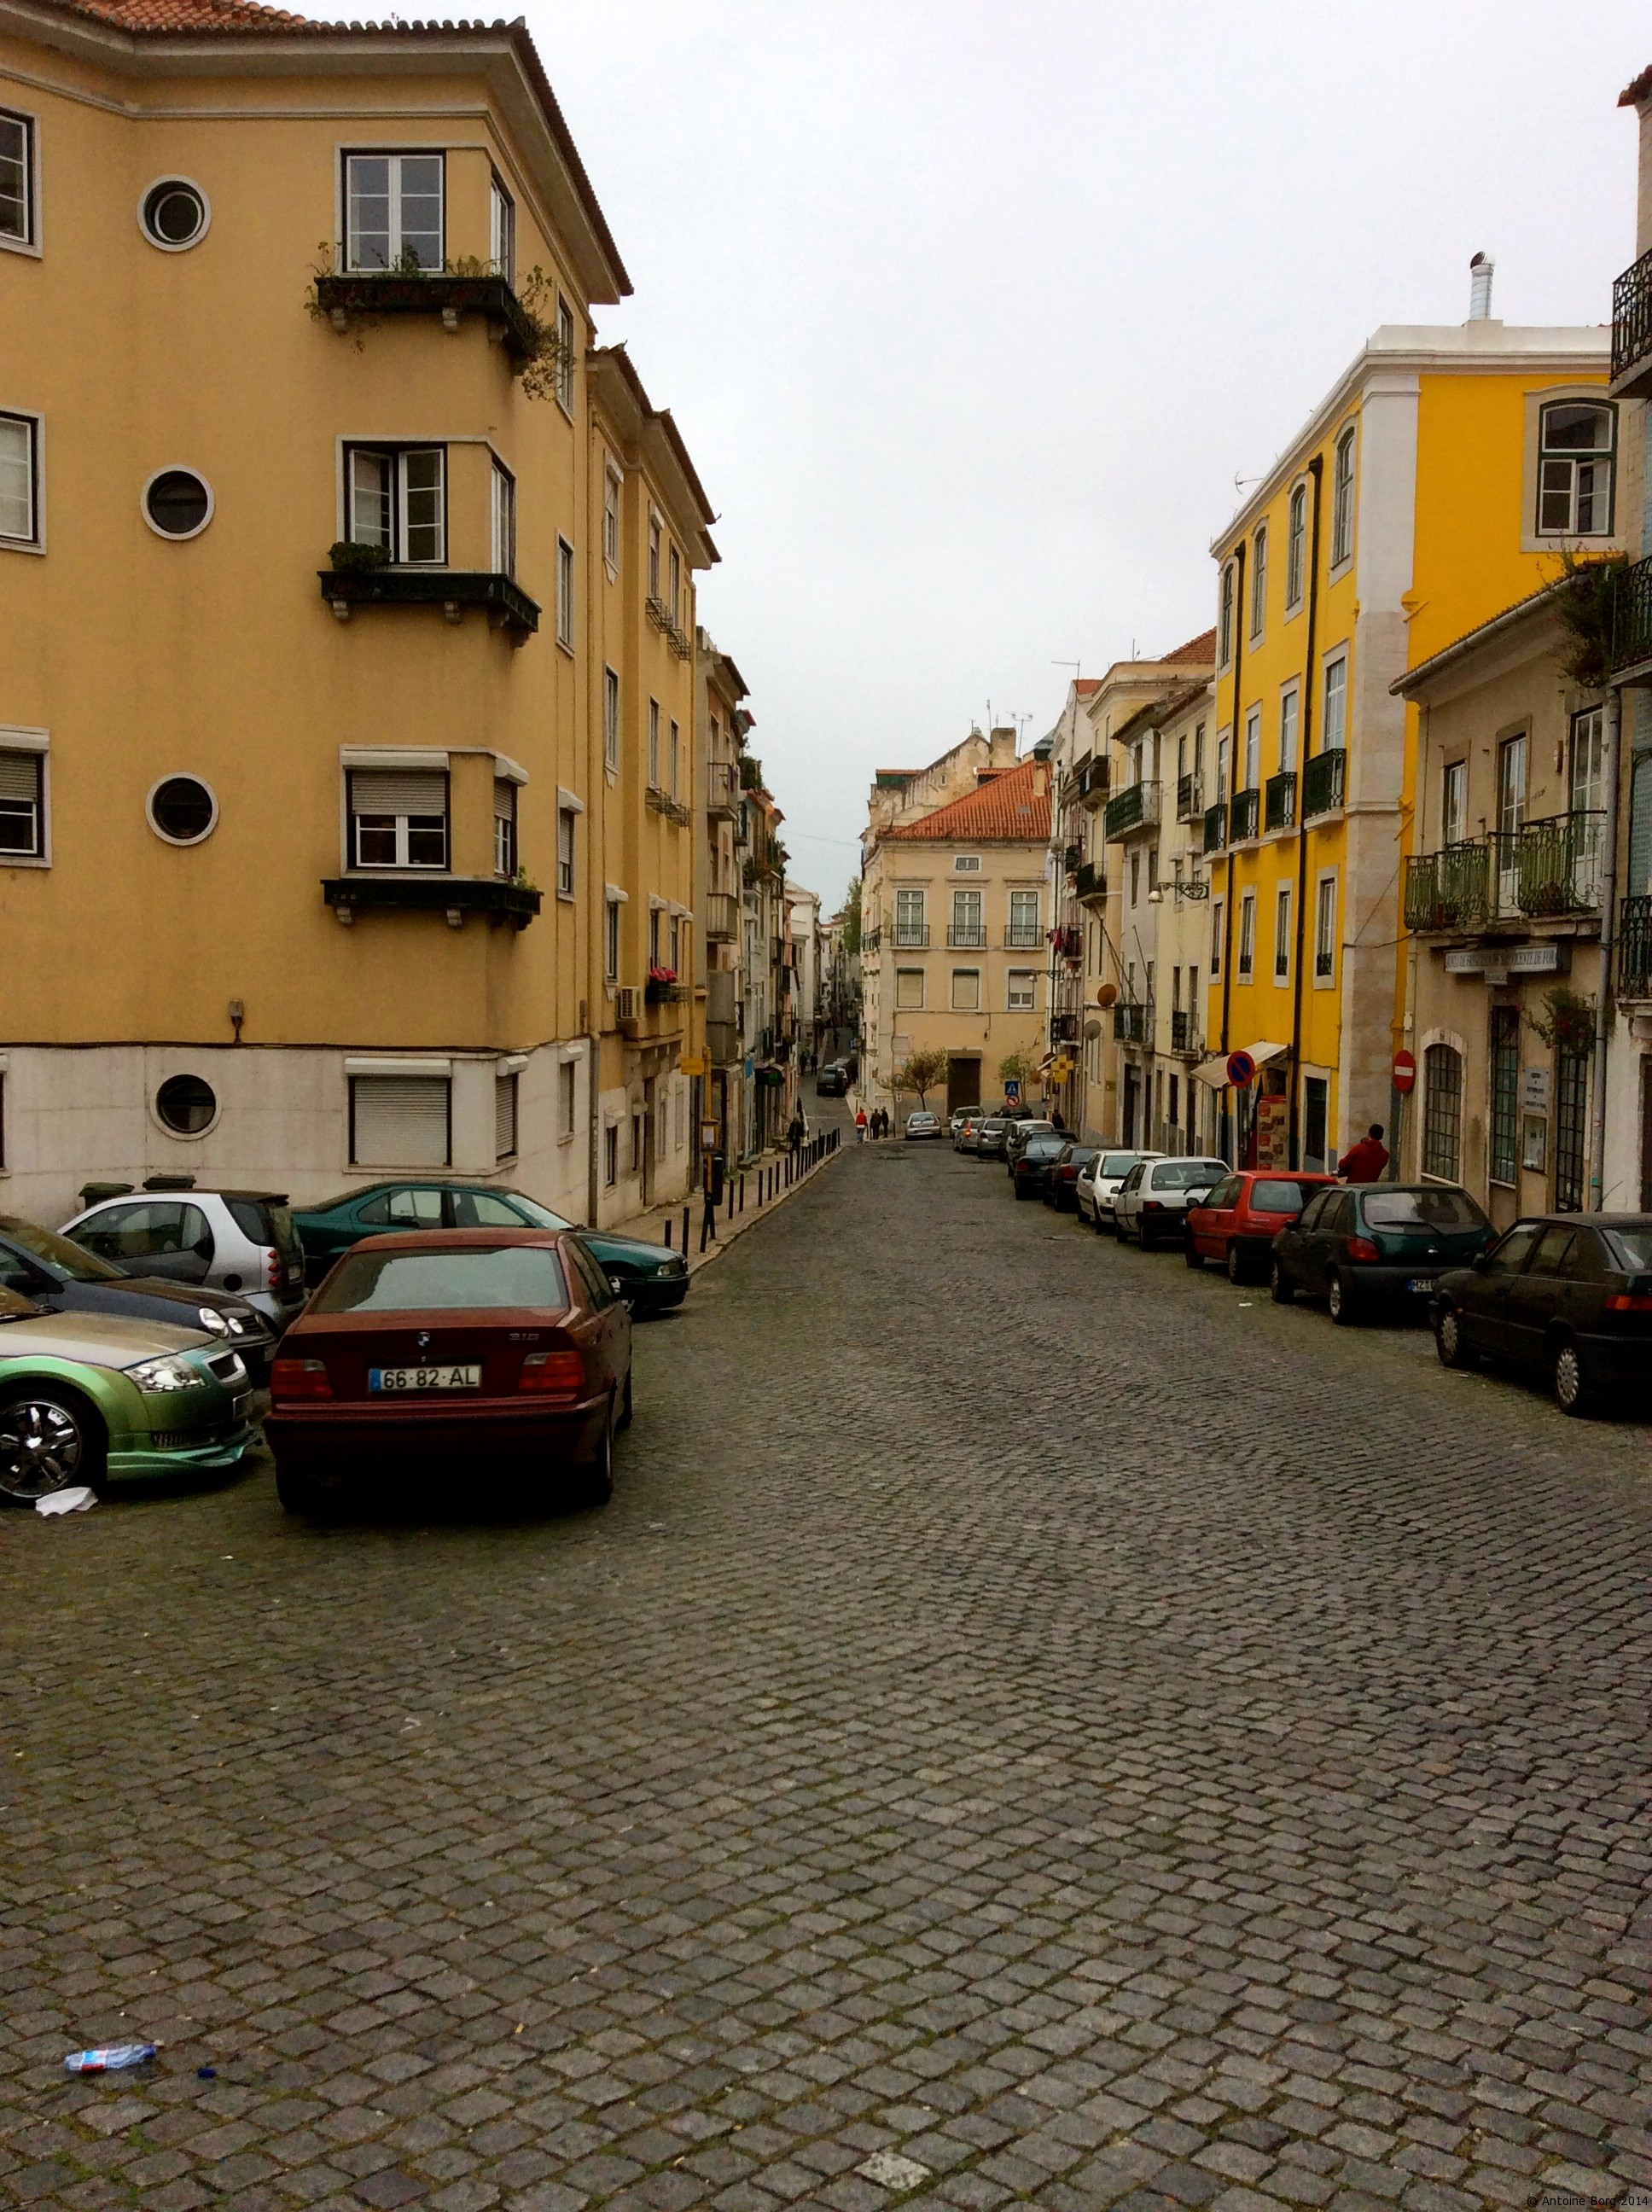 A photo of a street in Lisbon